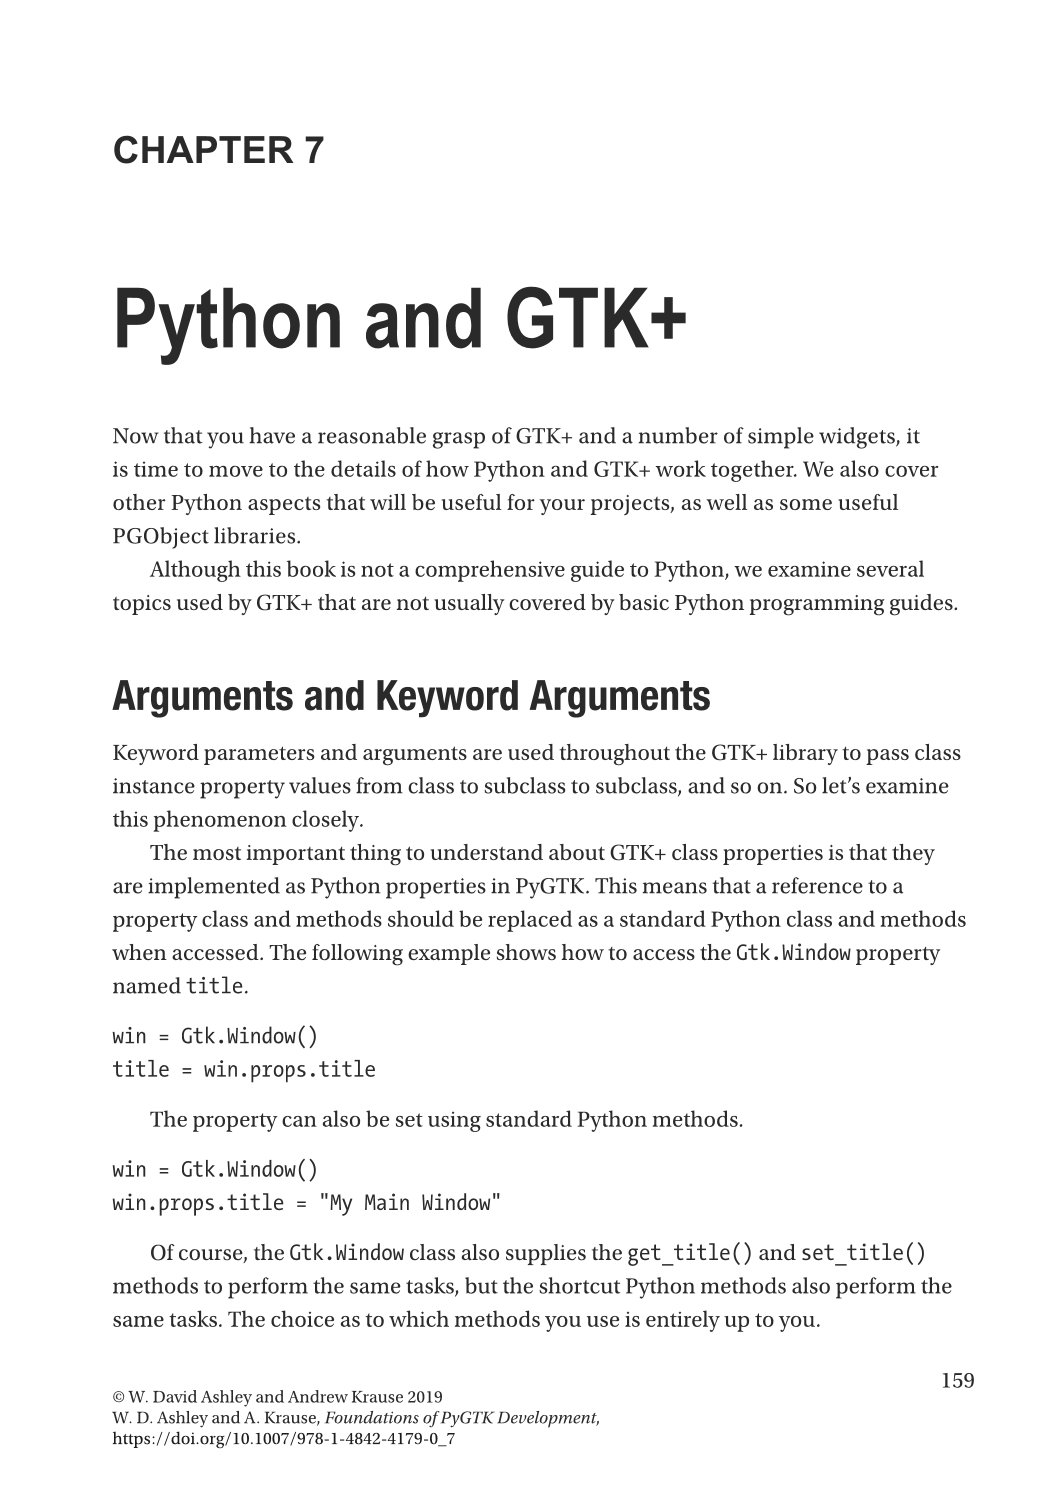 Foundations of PyGTK Development: GUI Creation with Python-preview-3